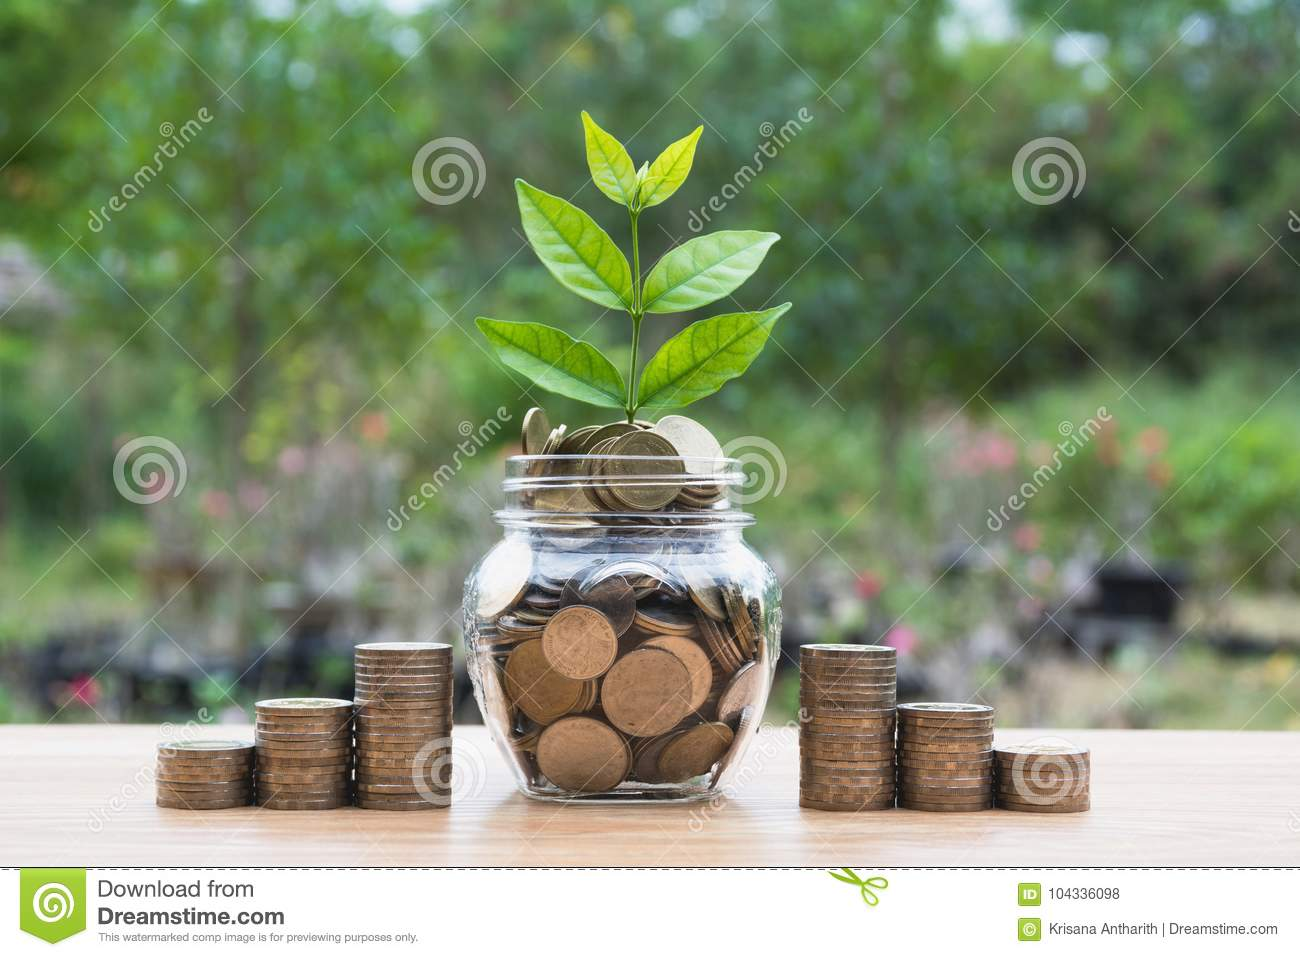 Coins in jar with money stack step growing money.